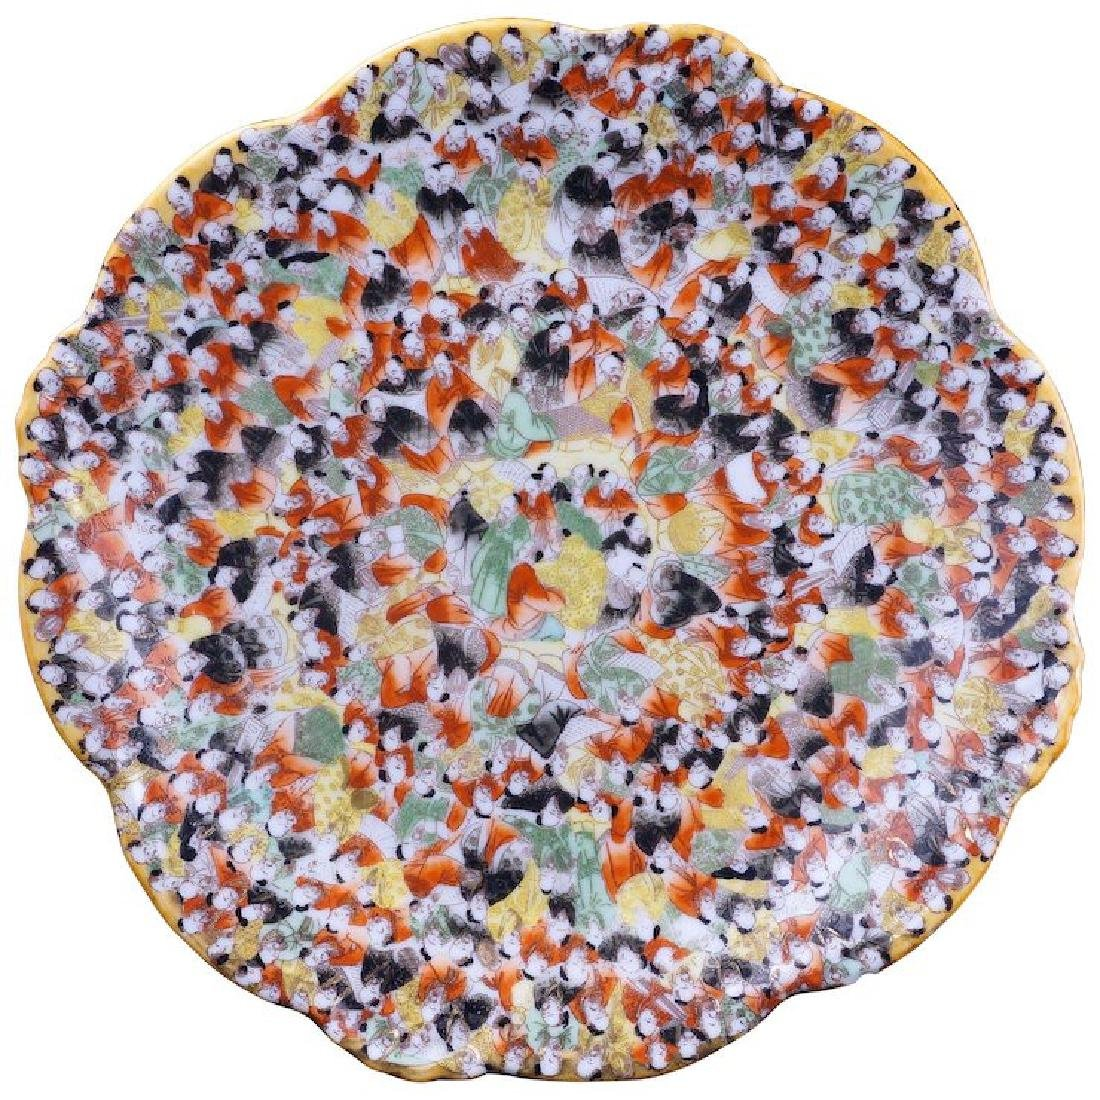 Japanese porcelain thousand faces scalloped charger